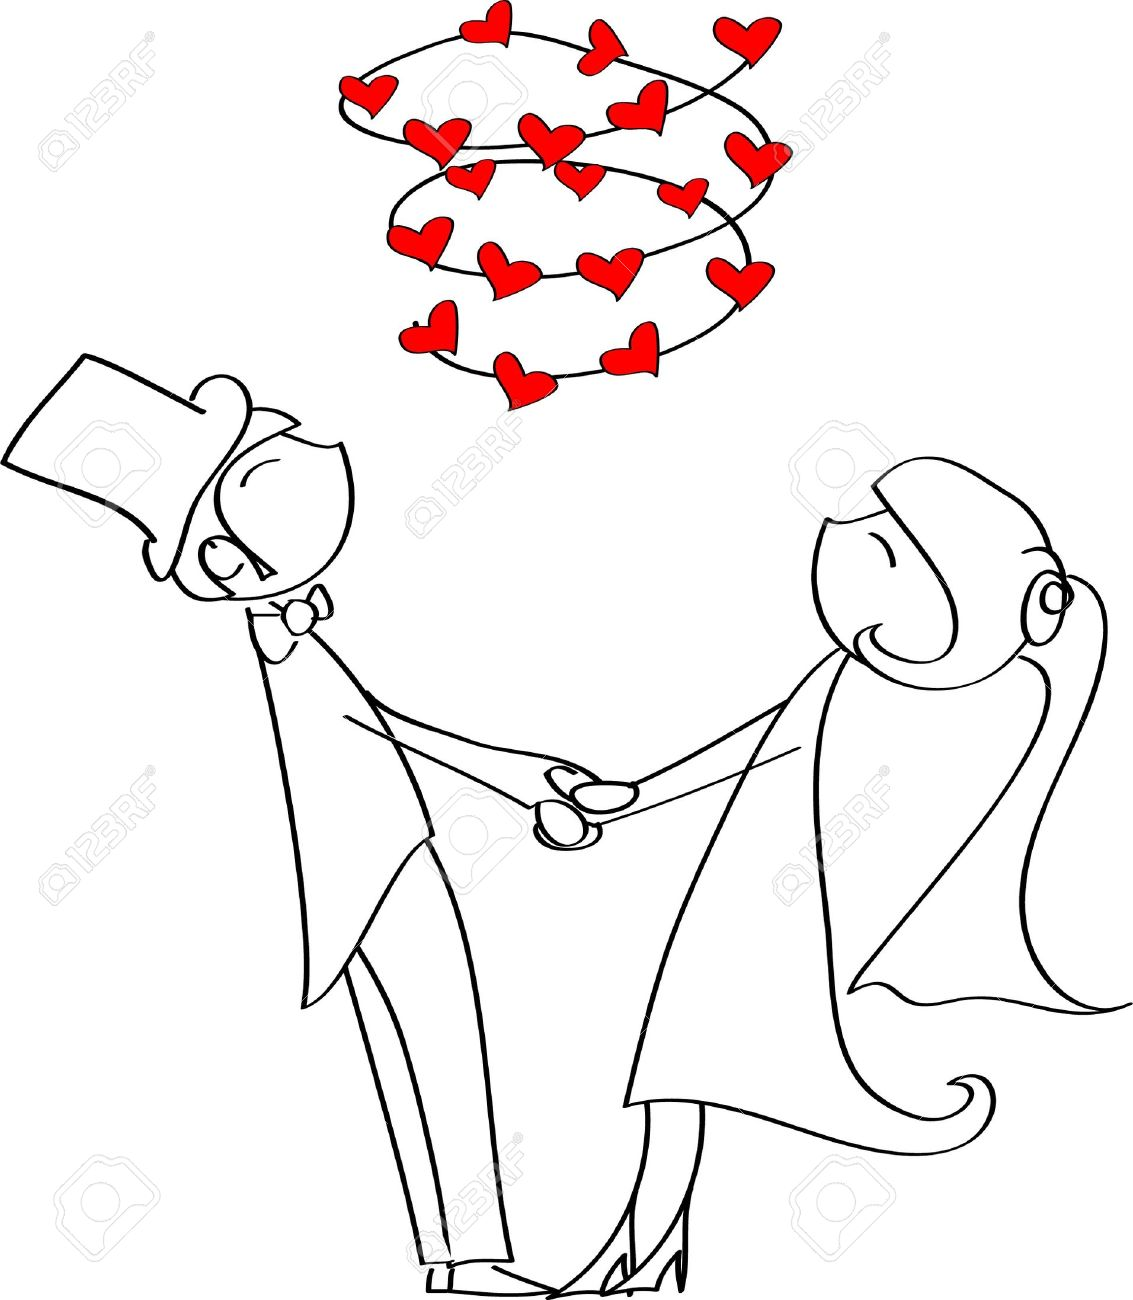 Bride Grabbing Groom Clipart 20 Free Cliparts